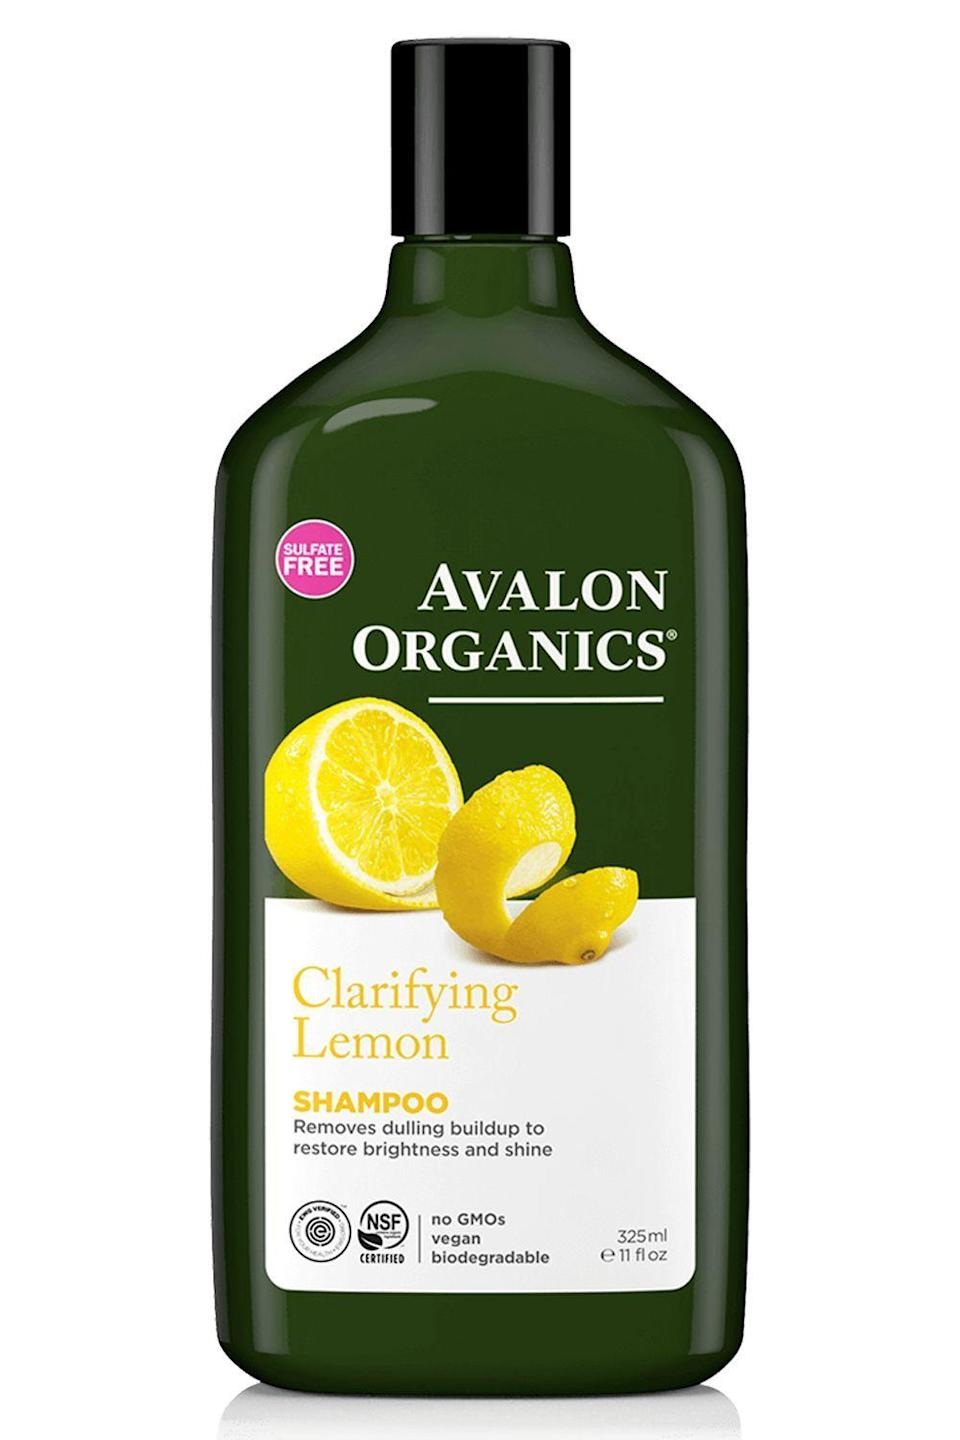 "<p><strong>Avalon Organics</strong></p><p>target.com</p><p><strong>$7.19</strong></p><p><a href=""https://www.target.com/p/avalon-hair-shampoos-11-fl-oz/-/A-48638444"" rel=""nofollow noopener"" target=""_blank"" data-ylk=""slk:Shop Now"" class=""link rapid-noclick-resp"">Shop Now</a></p><p>Build-up from hard water, <a href=""https://www.cosmopolitan.com/style-beauty/beauty/advice/g1417/best-dry-shampoo/"" rel=""nofollow noopener"" target=""_blank"" data-ylk=""slk:dry shampoo"" class=""link rapid-noclick-resp"">dry shampoo</a>, and styling products can make your hair look super dull. Luckily, this organic shampoo contains<strong> clarifying lemon extract to deep-clean your hair and scalp </strong>(without depleting your natural oils) and bring back shine and softness.</p>"